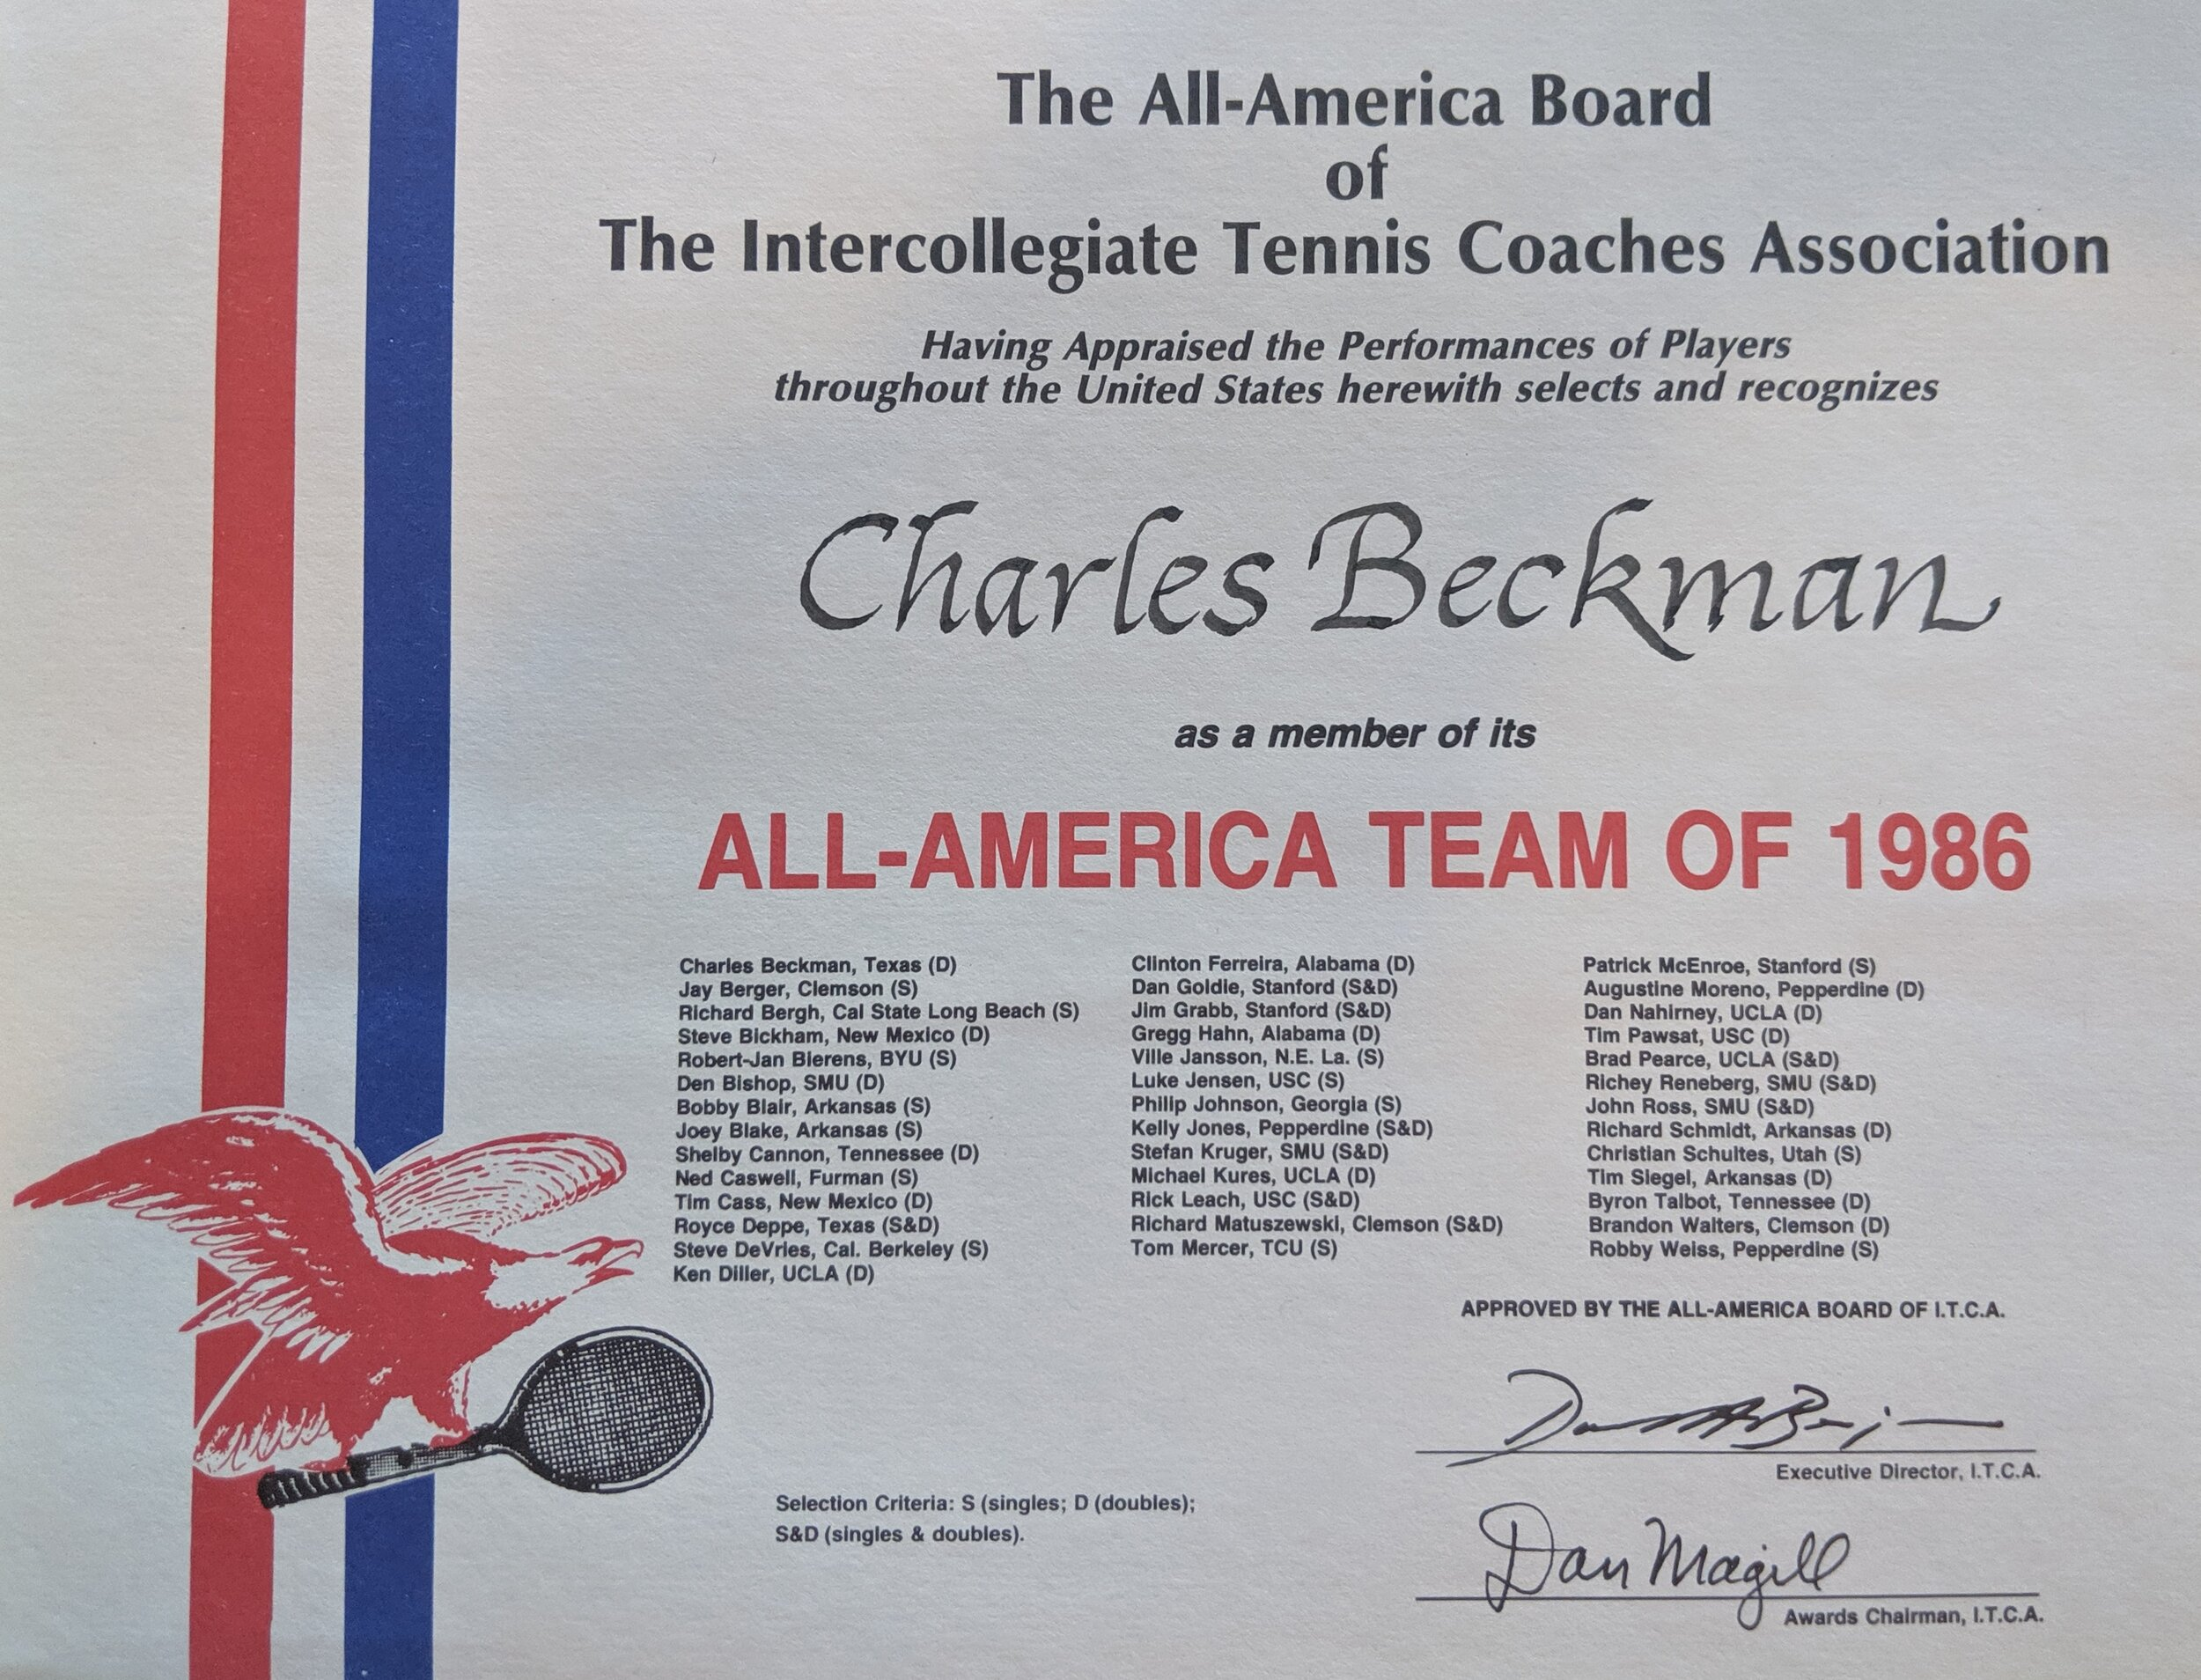 Charles Beckman is a ITA All American in 1985,1986, and 1987 -